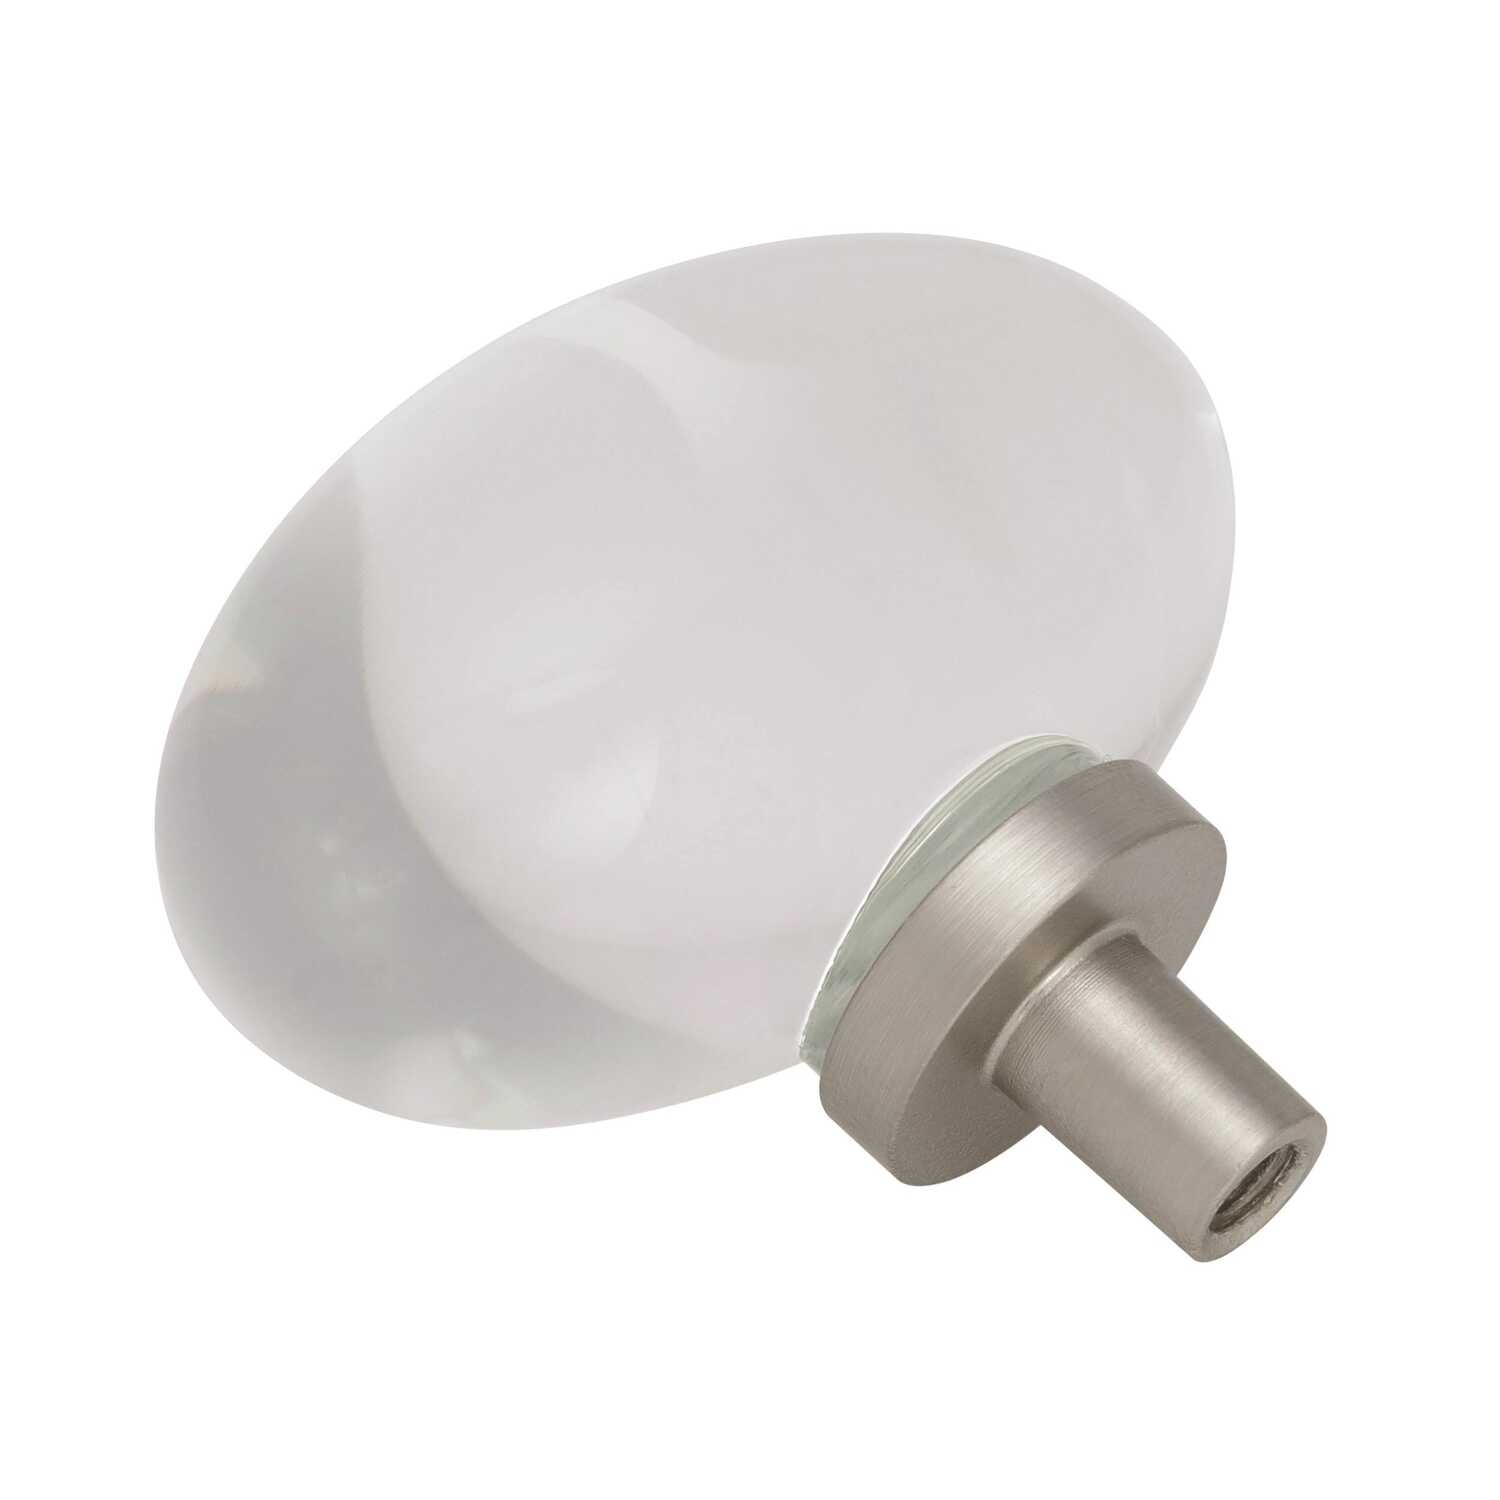 Amerock  Glacio Collection  Cabinet Knob  1-3/16 in. Clear/Satin Nickel  1 pk